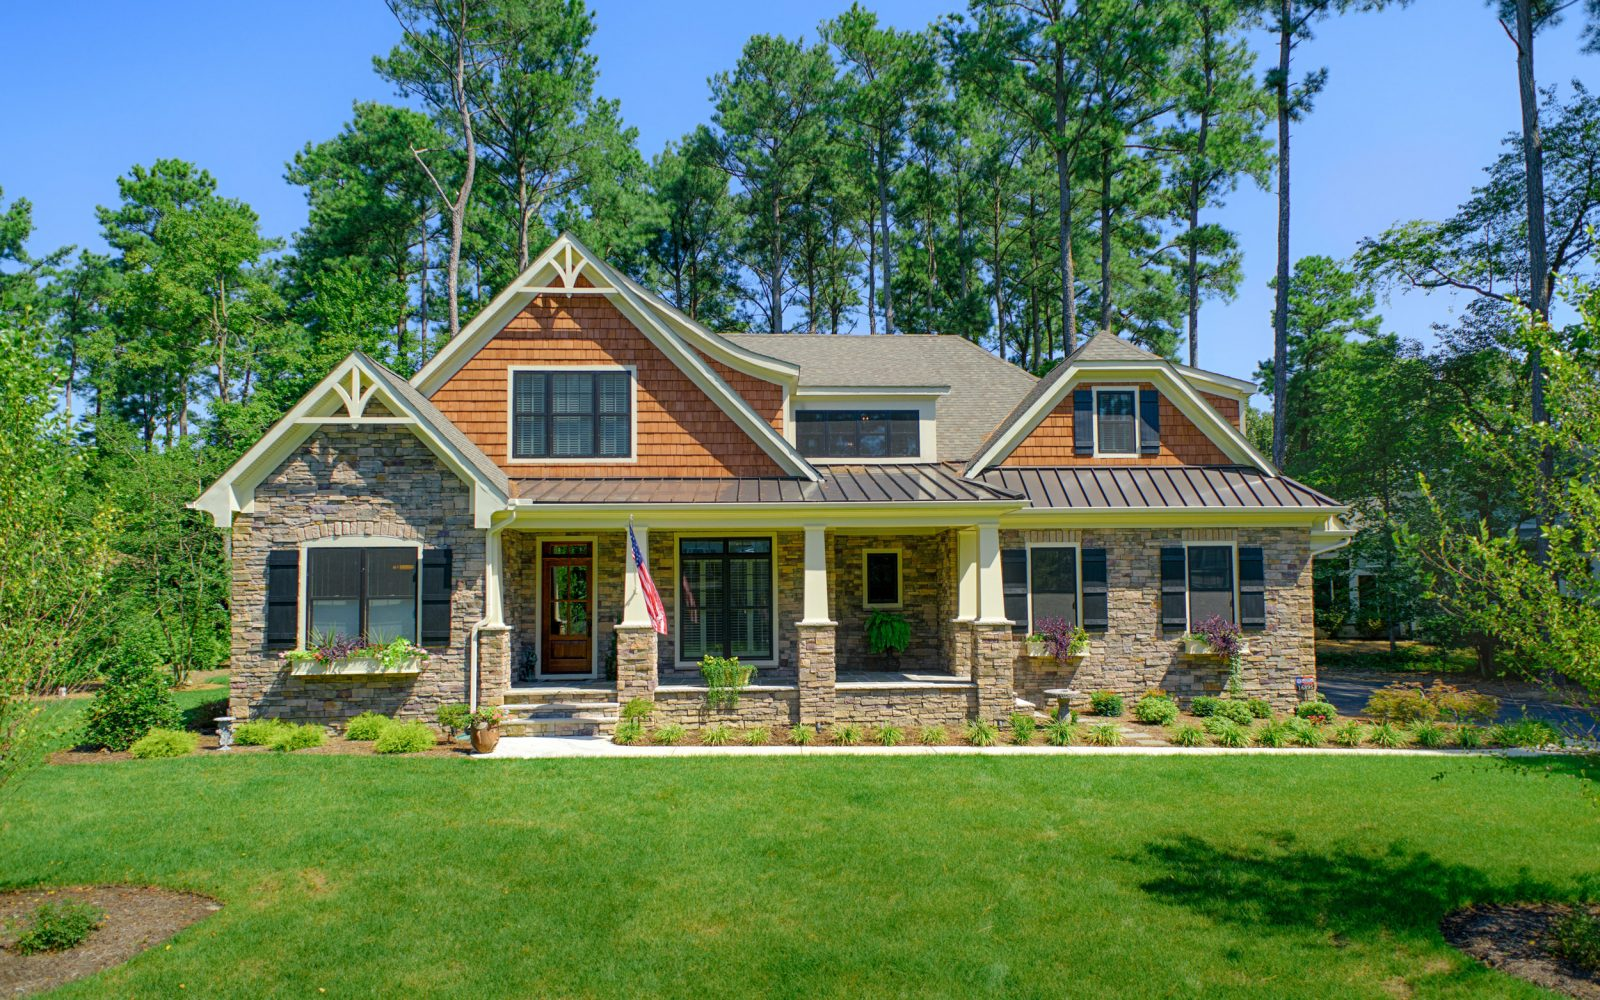 The lewes building co summerlake for Summerlake house plan